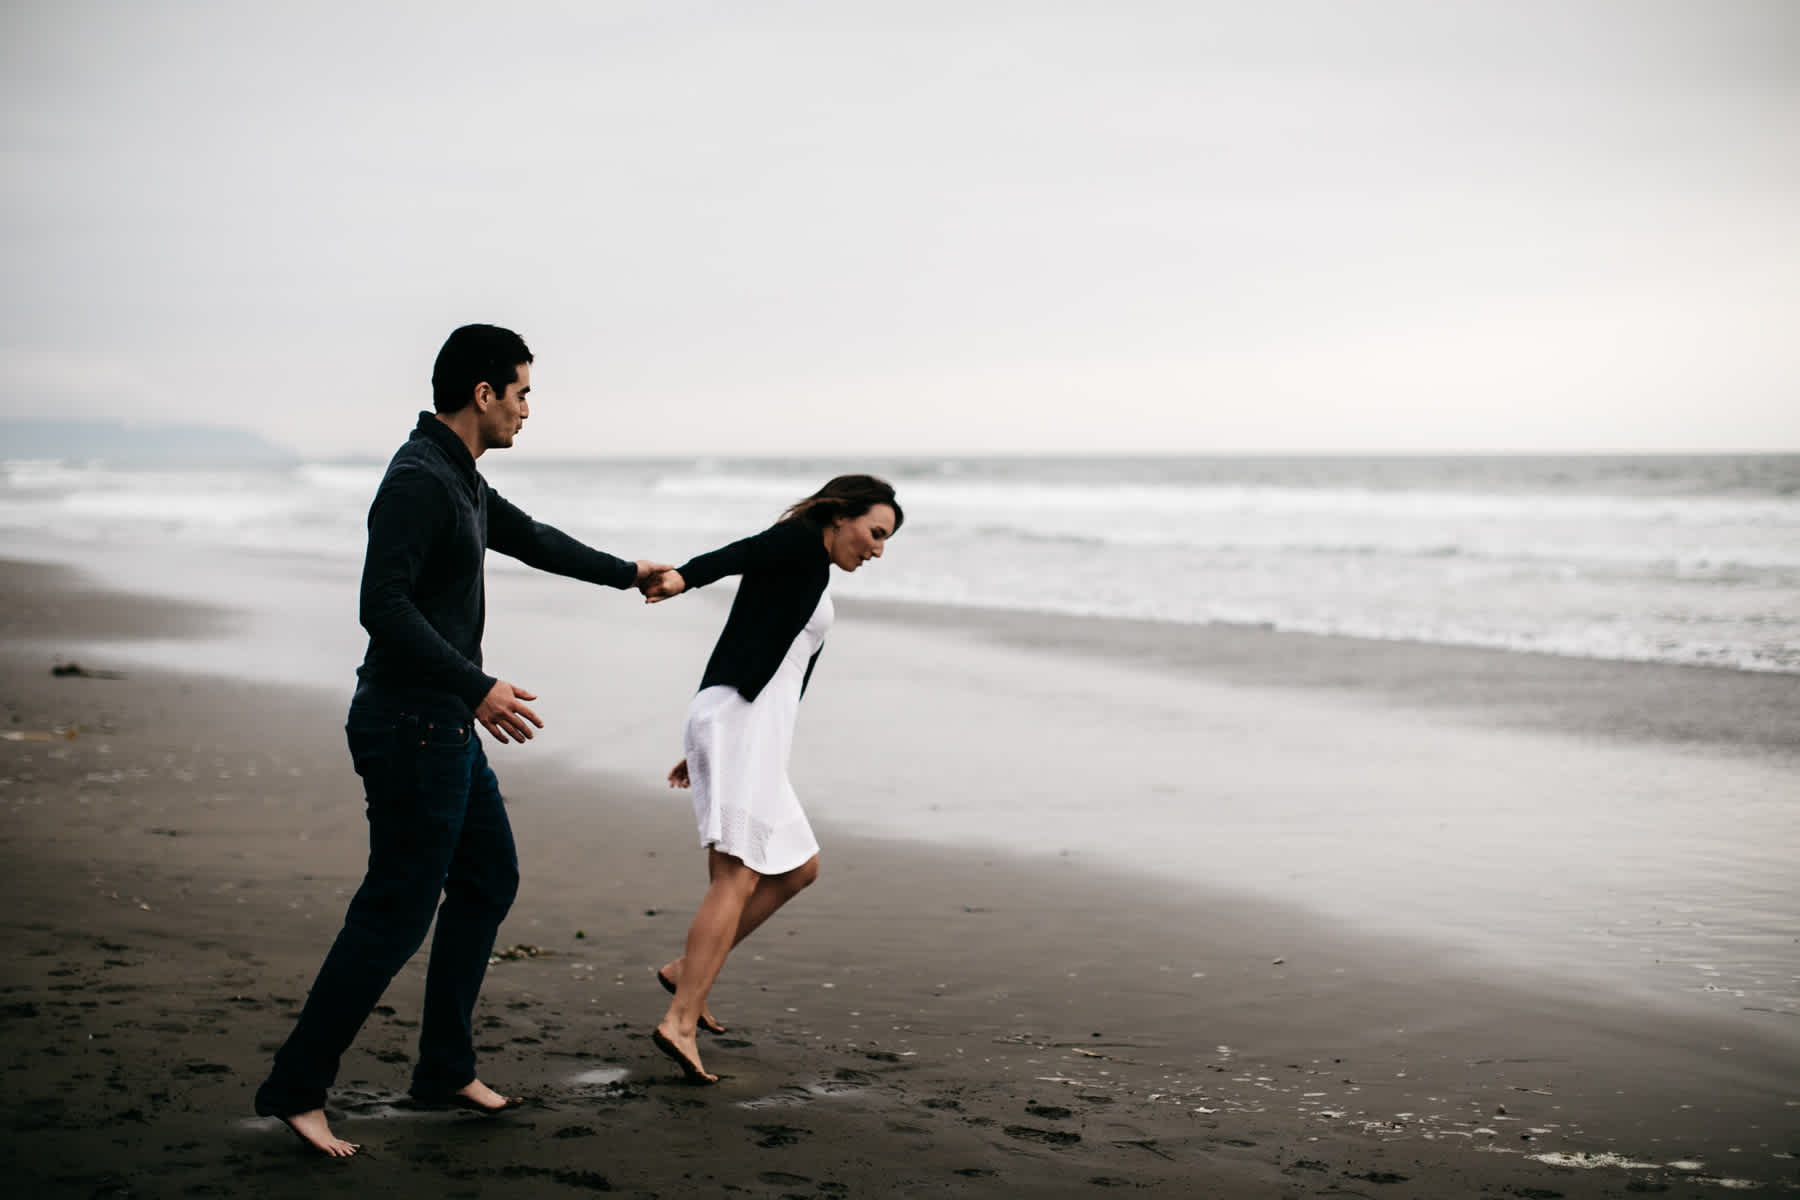 fort-funston-foggy-fun-beach-water-engagement-session-47